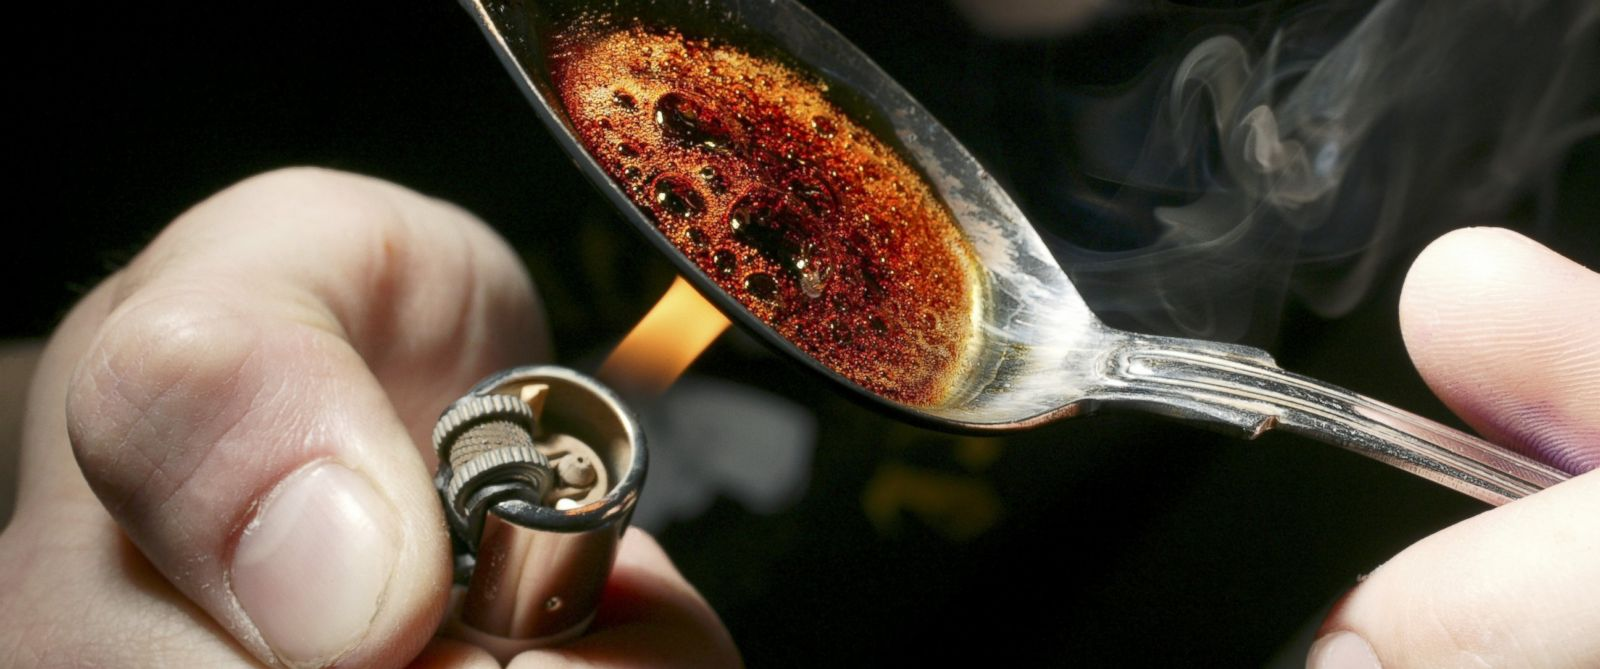 PHOTO: The CDC reported today that heroin use has been on the rise in the U.S. and heroin-related overdoses have tripled since 2010. This picture shows a reenactment of heroin being prepped for use.